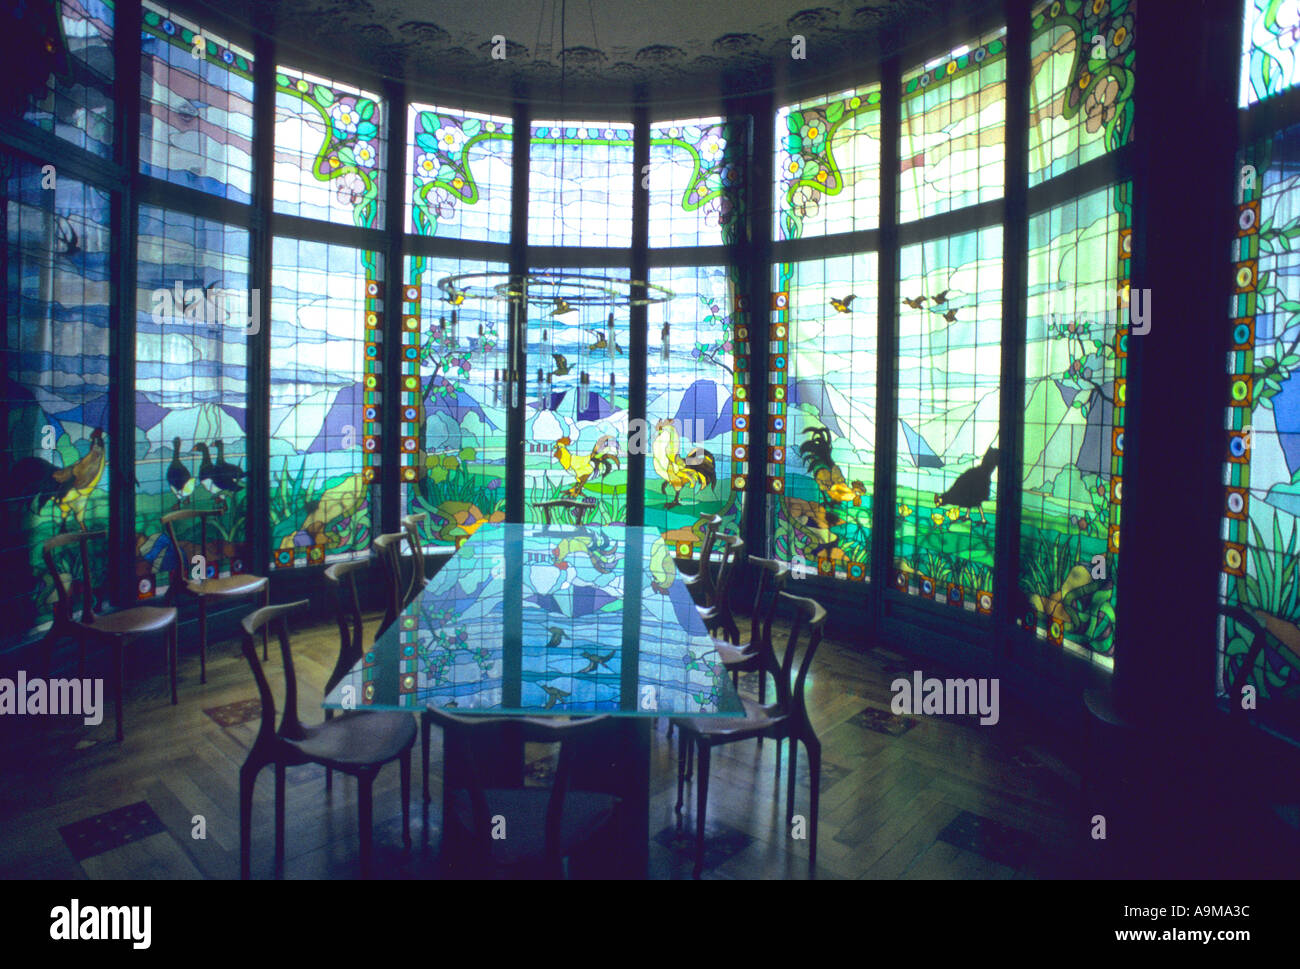 Colourful Art Nouveau Glass Window Wall Dining Room Casa Amatller By Th Architect P I Cadafalch Barcelona Catalonia Spain Europ